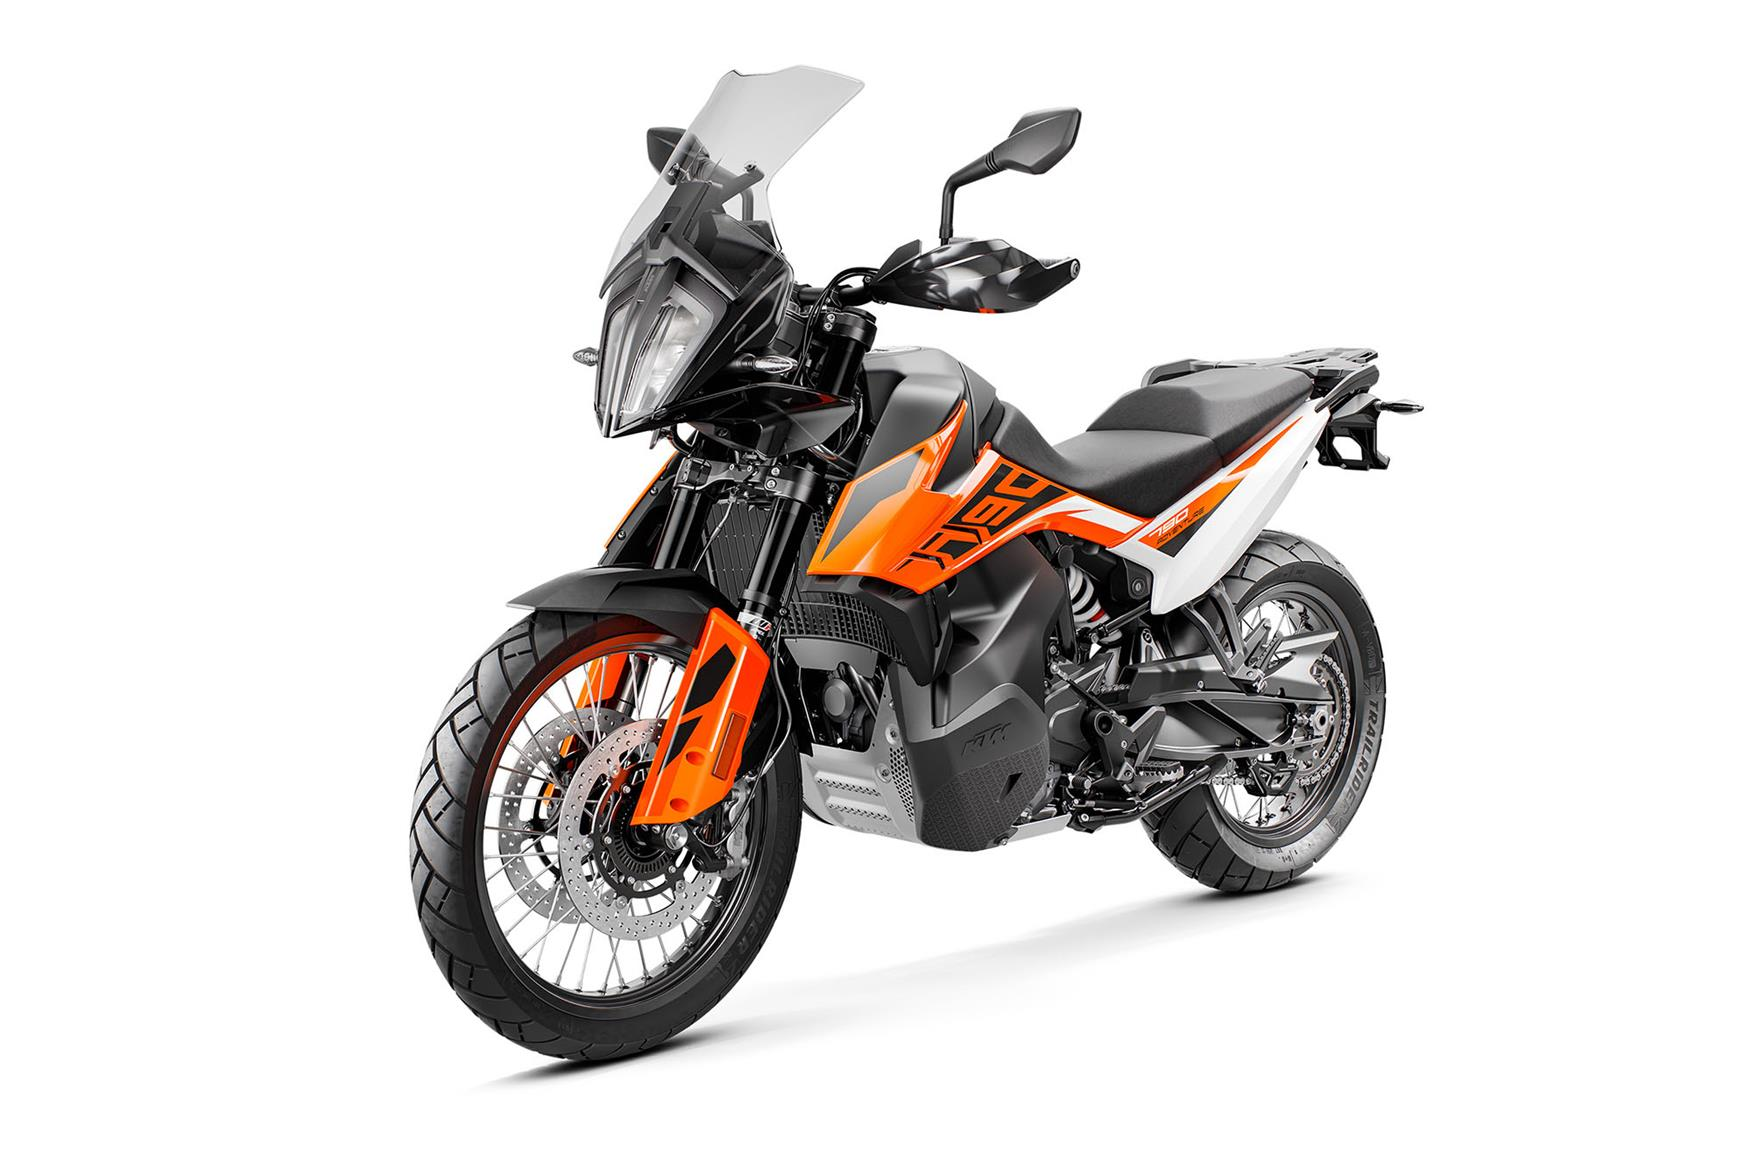 Ktm 790 Adventure 2019 On Review